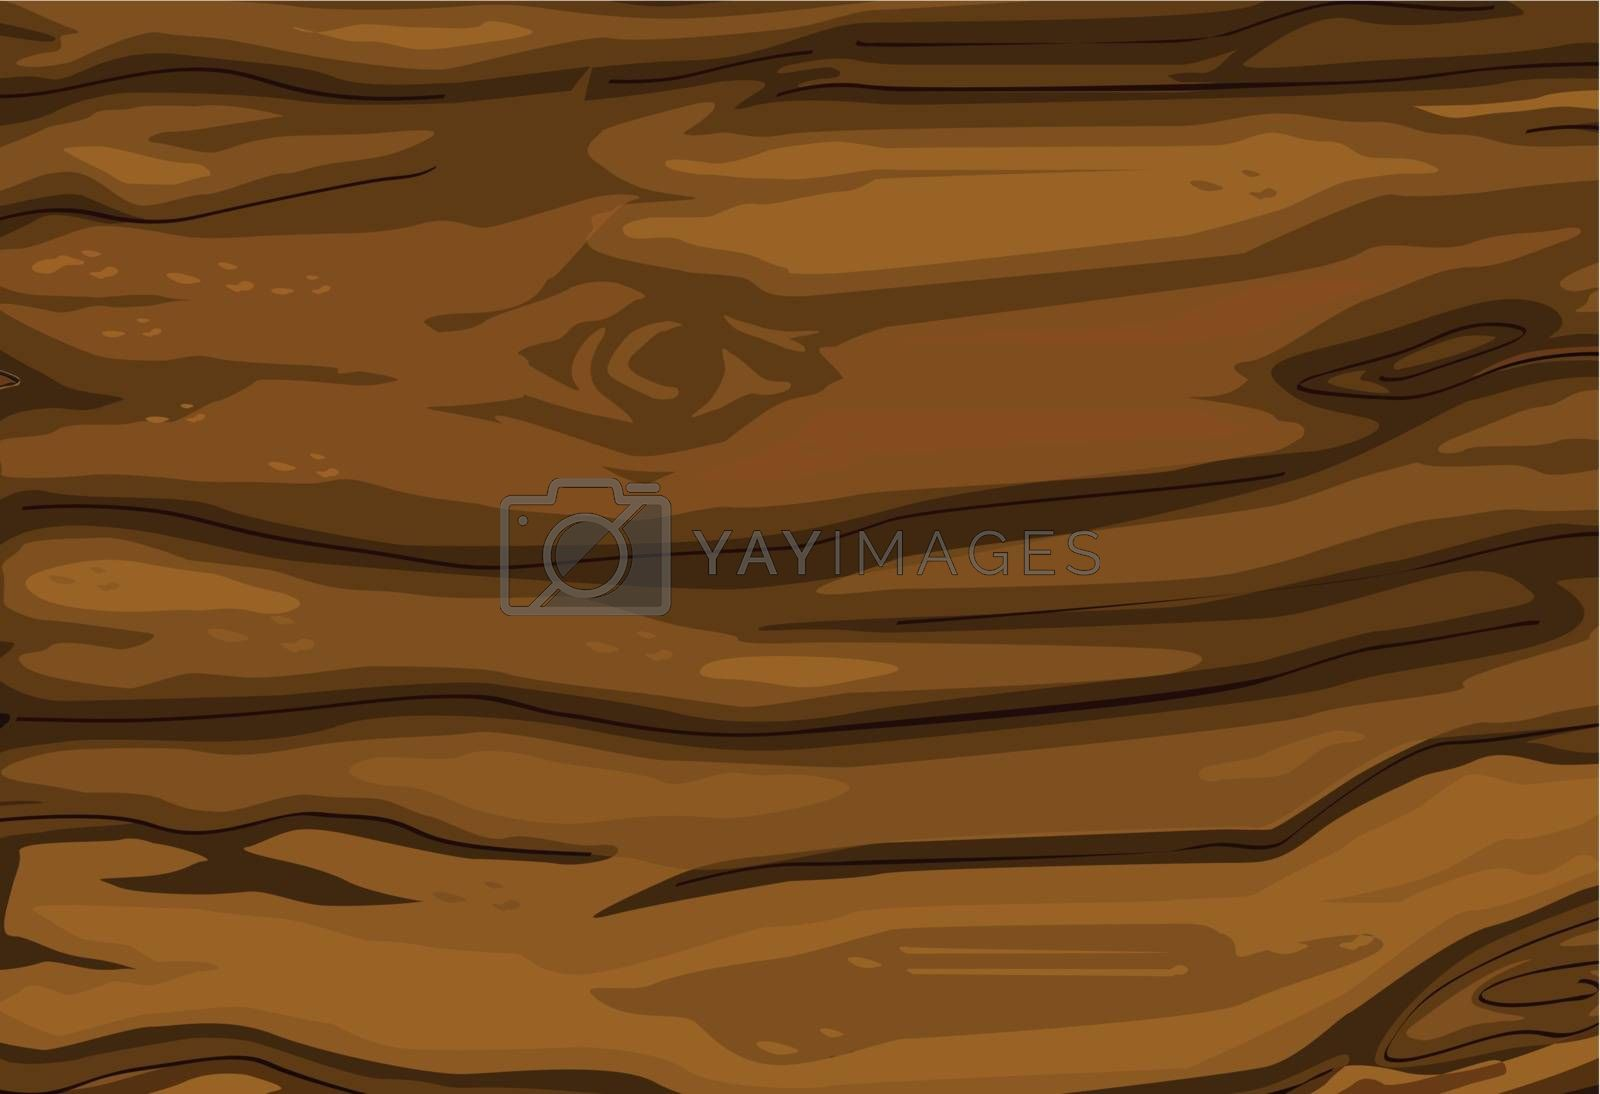 Illustrated texture of wood grain